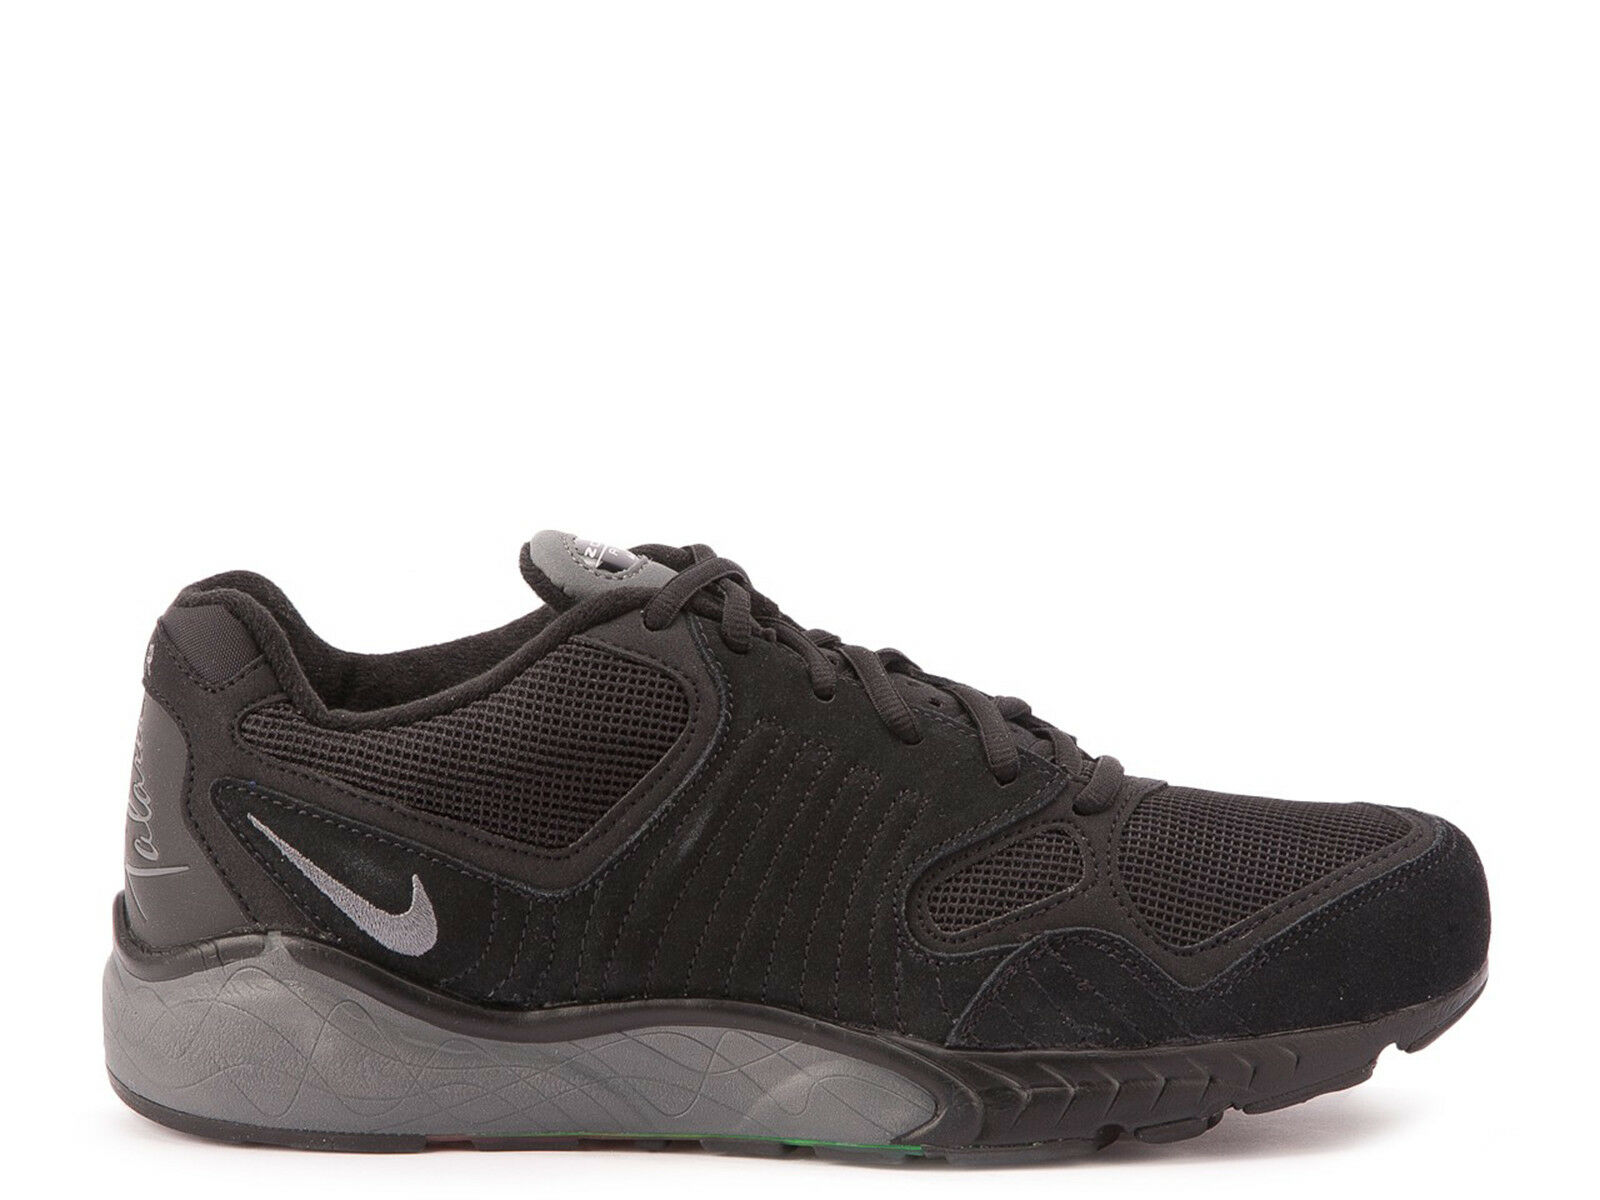 Brand New Nike Air Zoom Talaria '16 Men's Athletic Fashion Sneakers [844695 002]